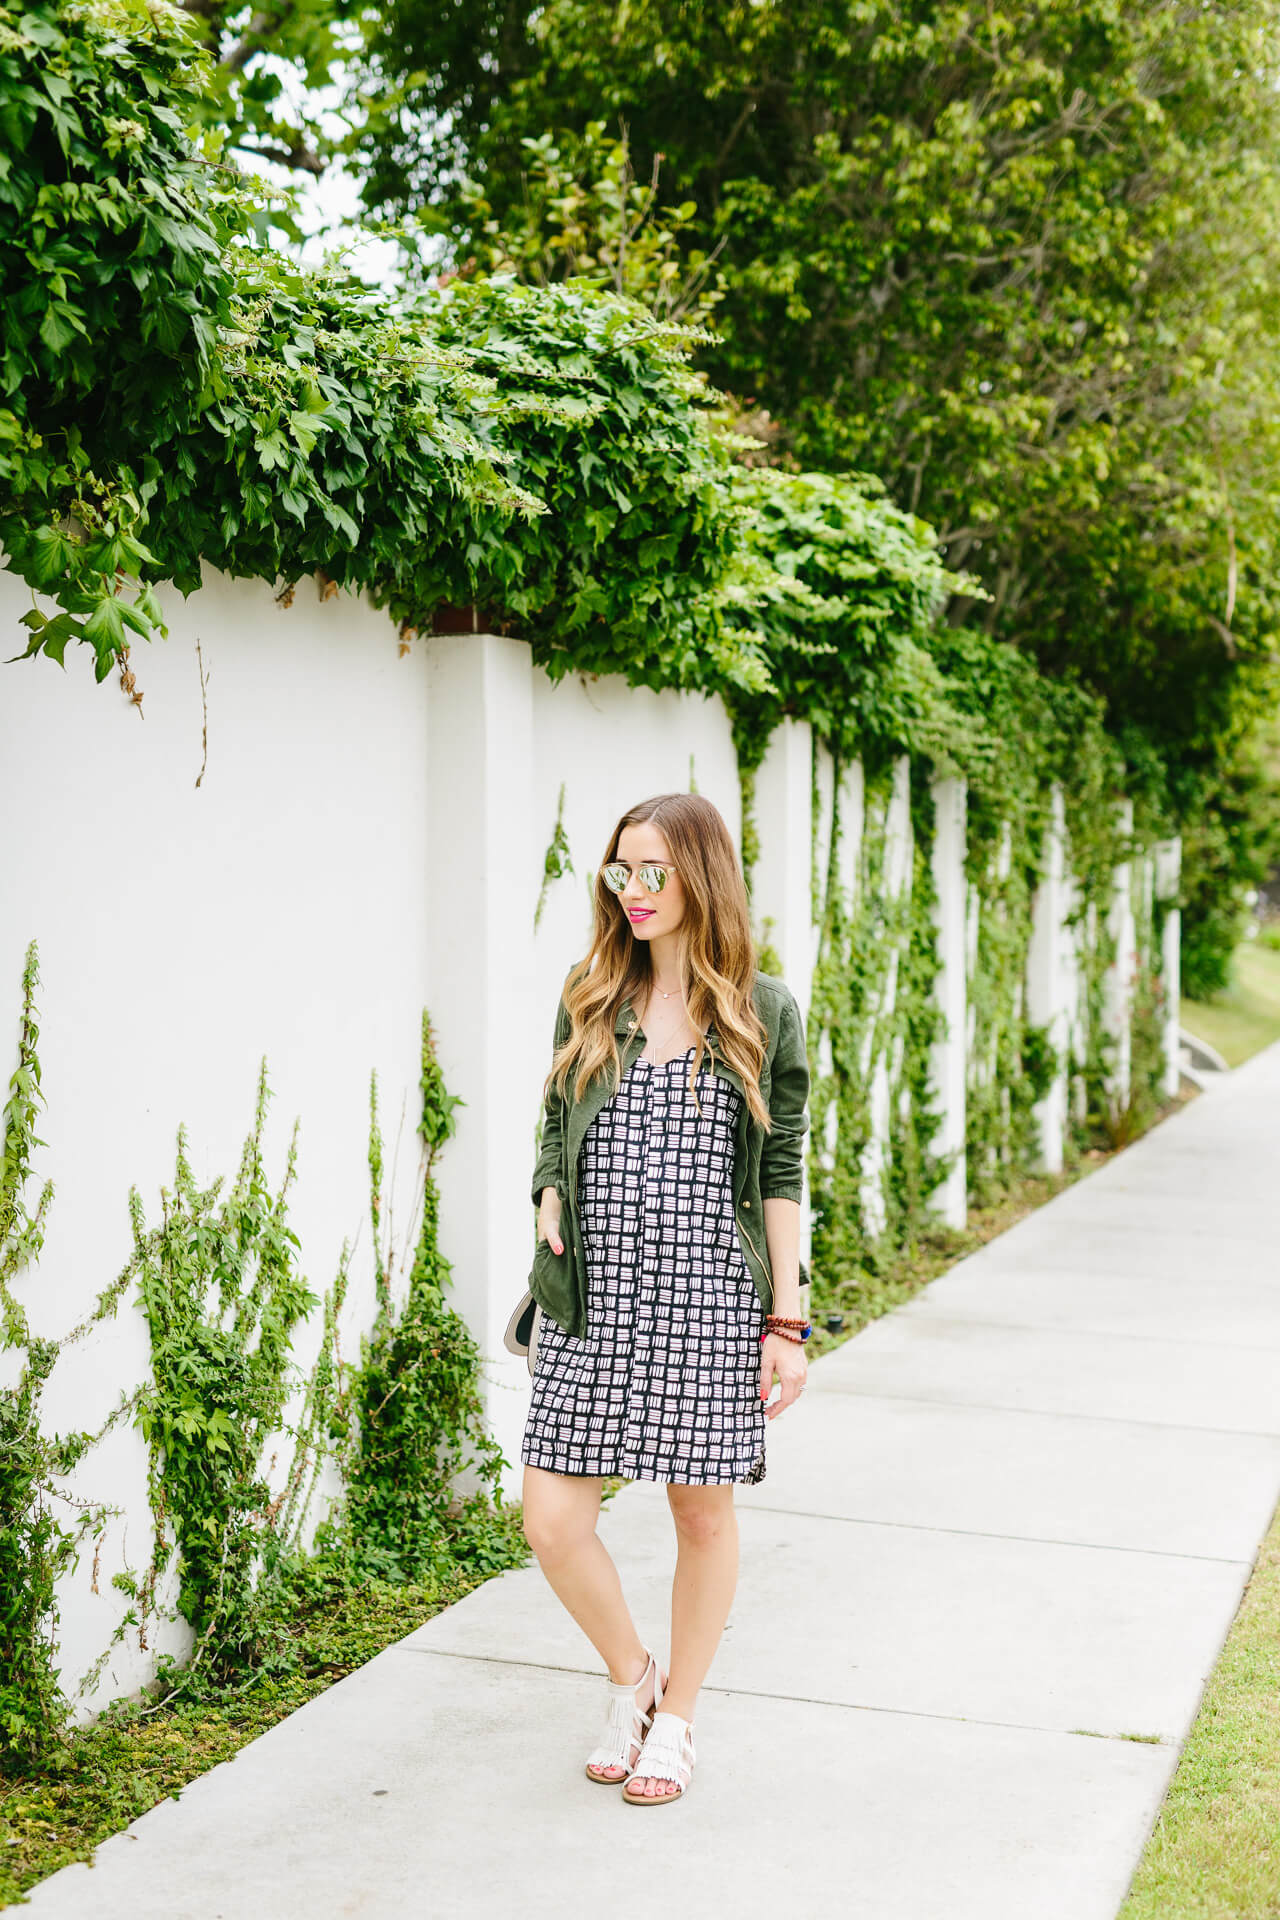 styling a bold black and white print with fringe sandals